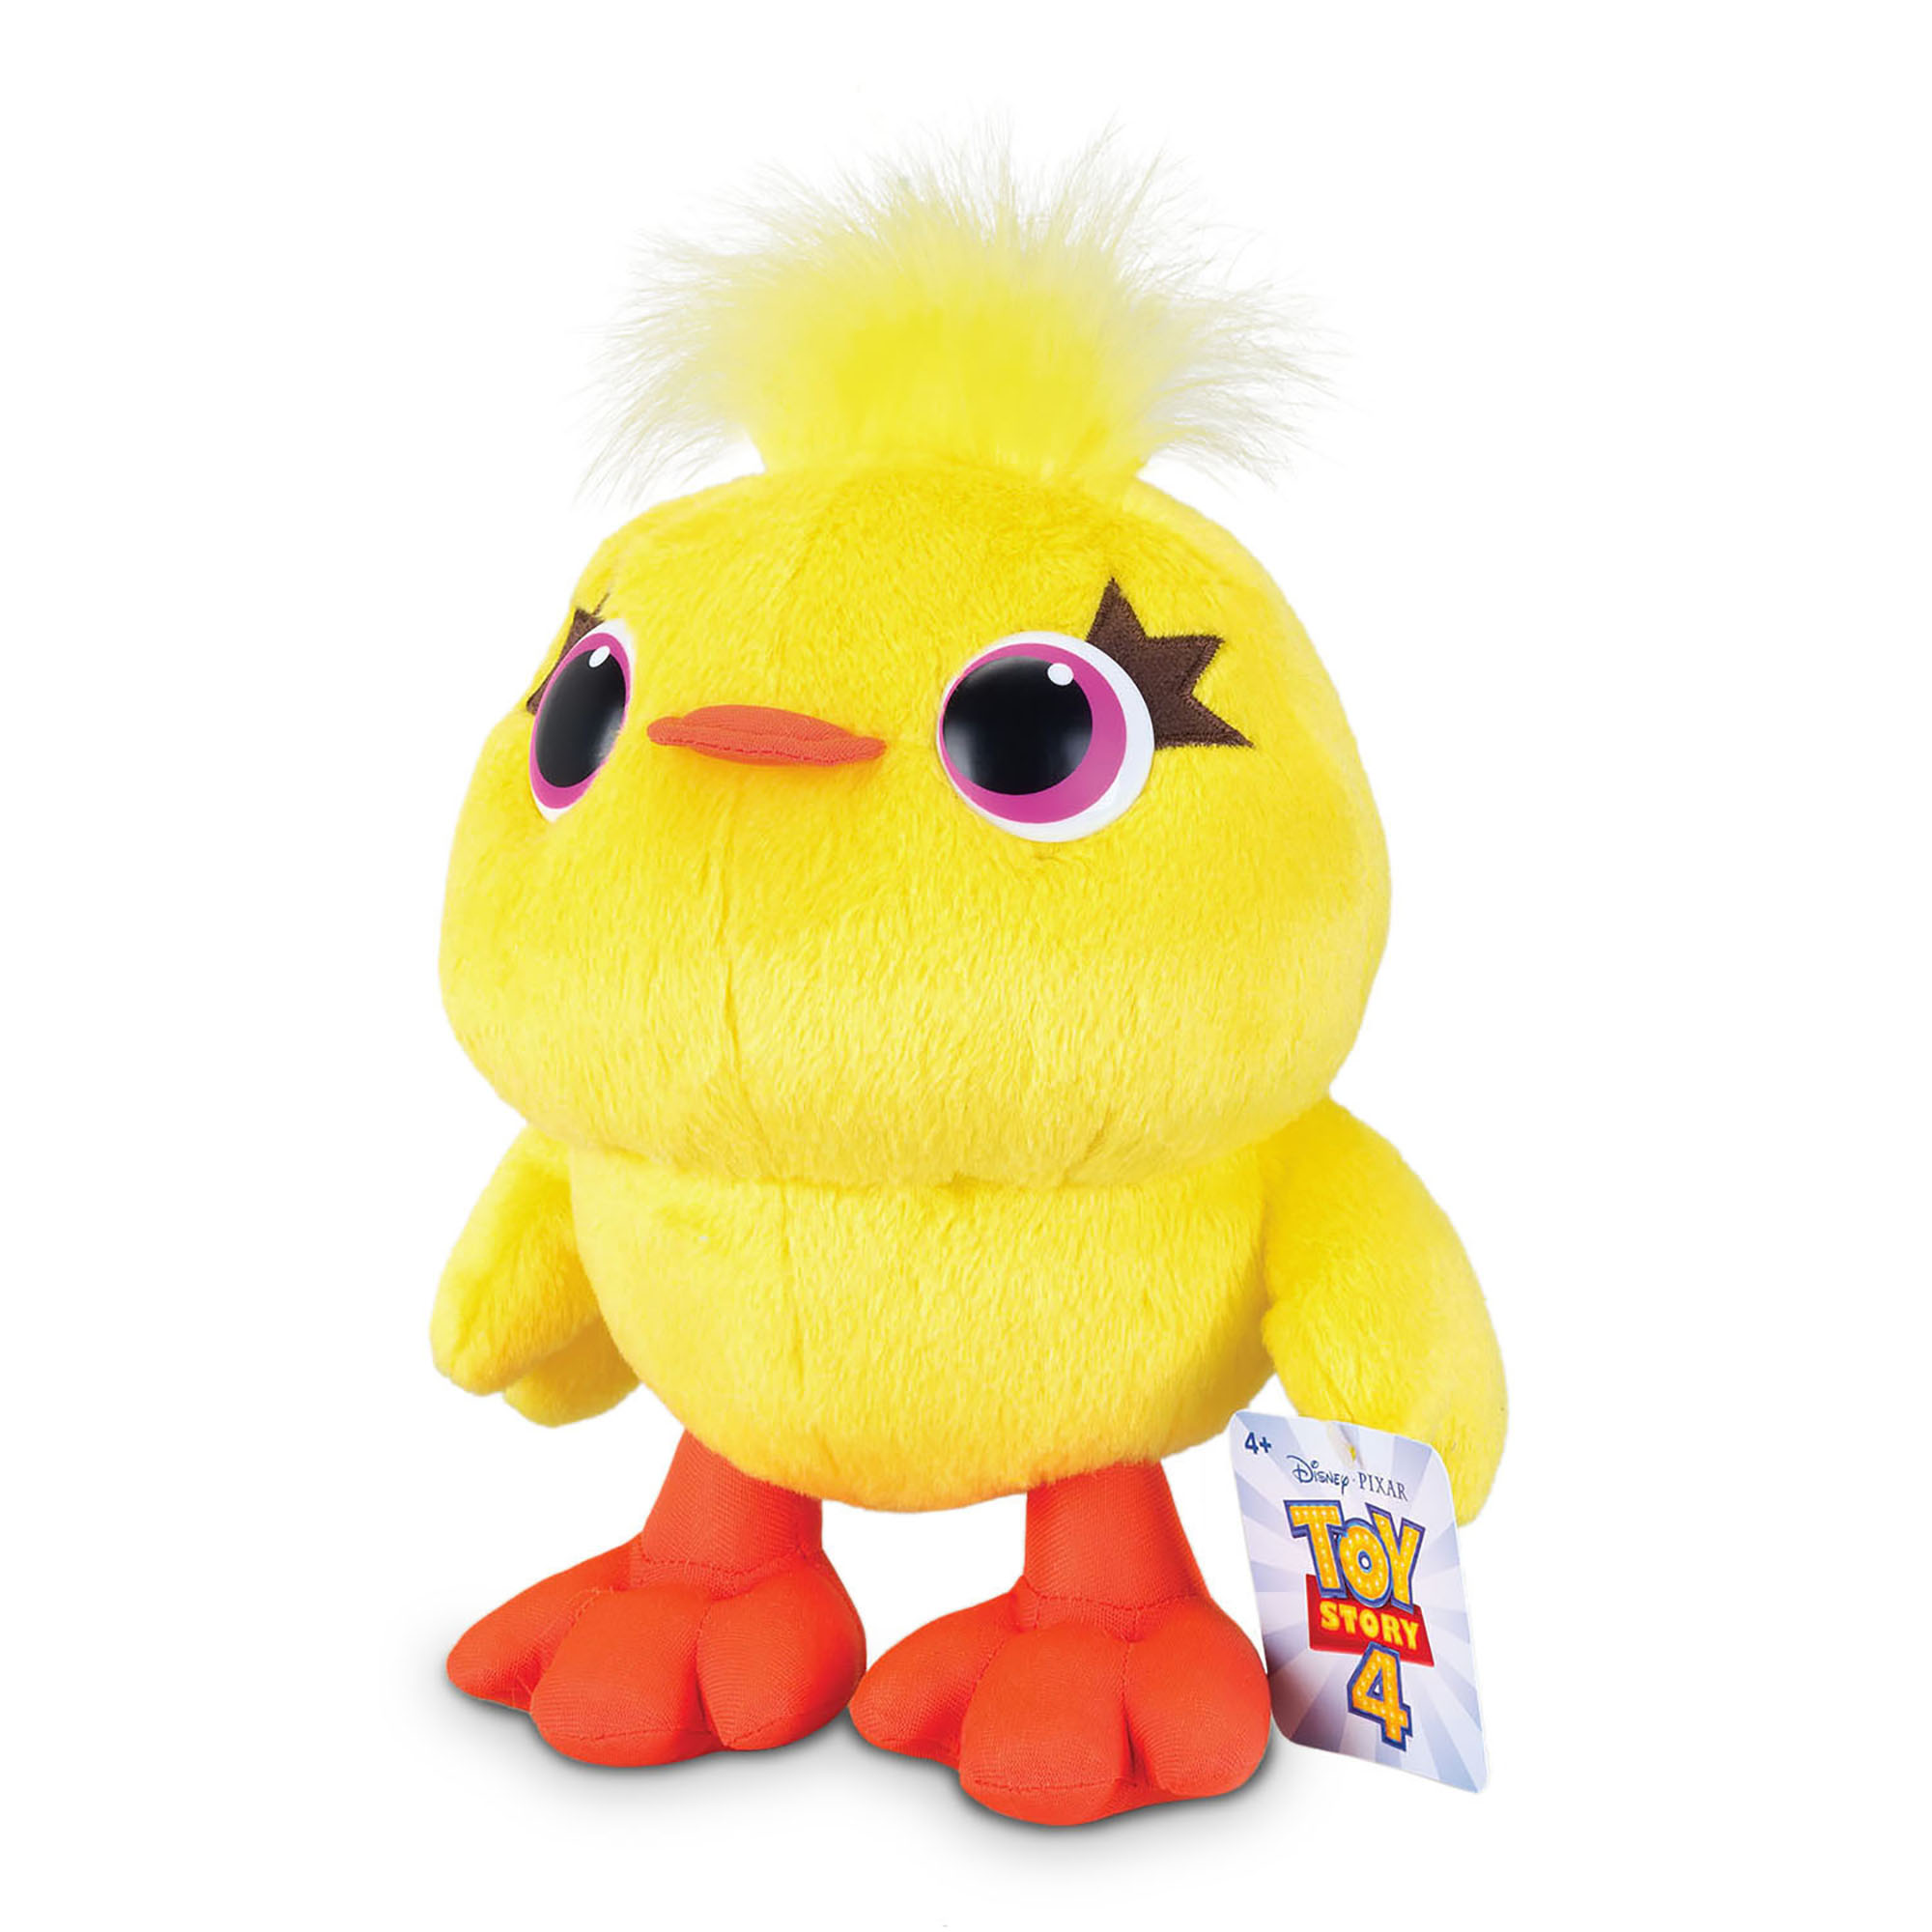 Picture of Toy Story 4 Ducky Huggable Plush